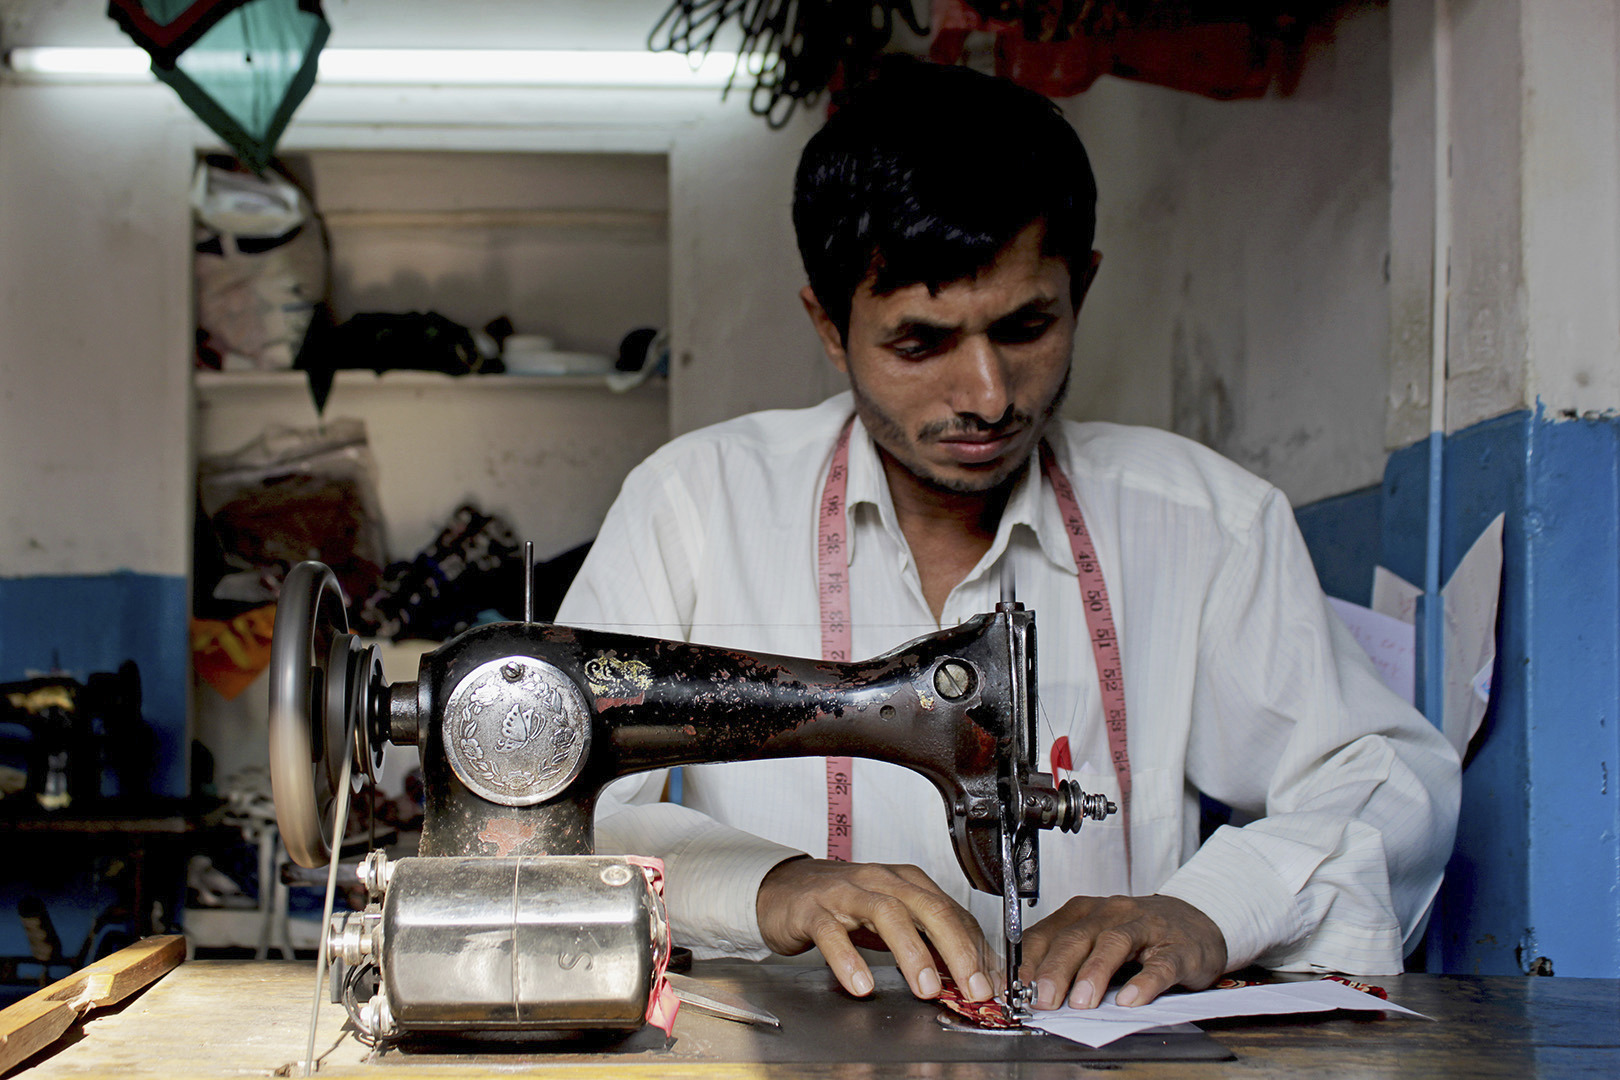 Bangladesh clothing maker